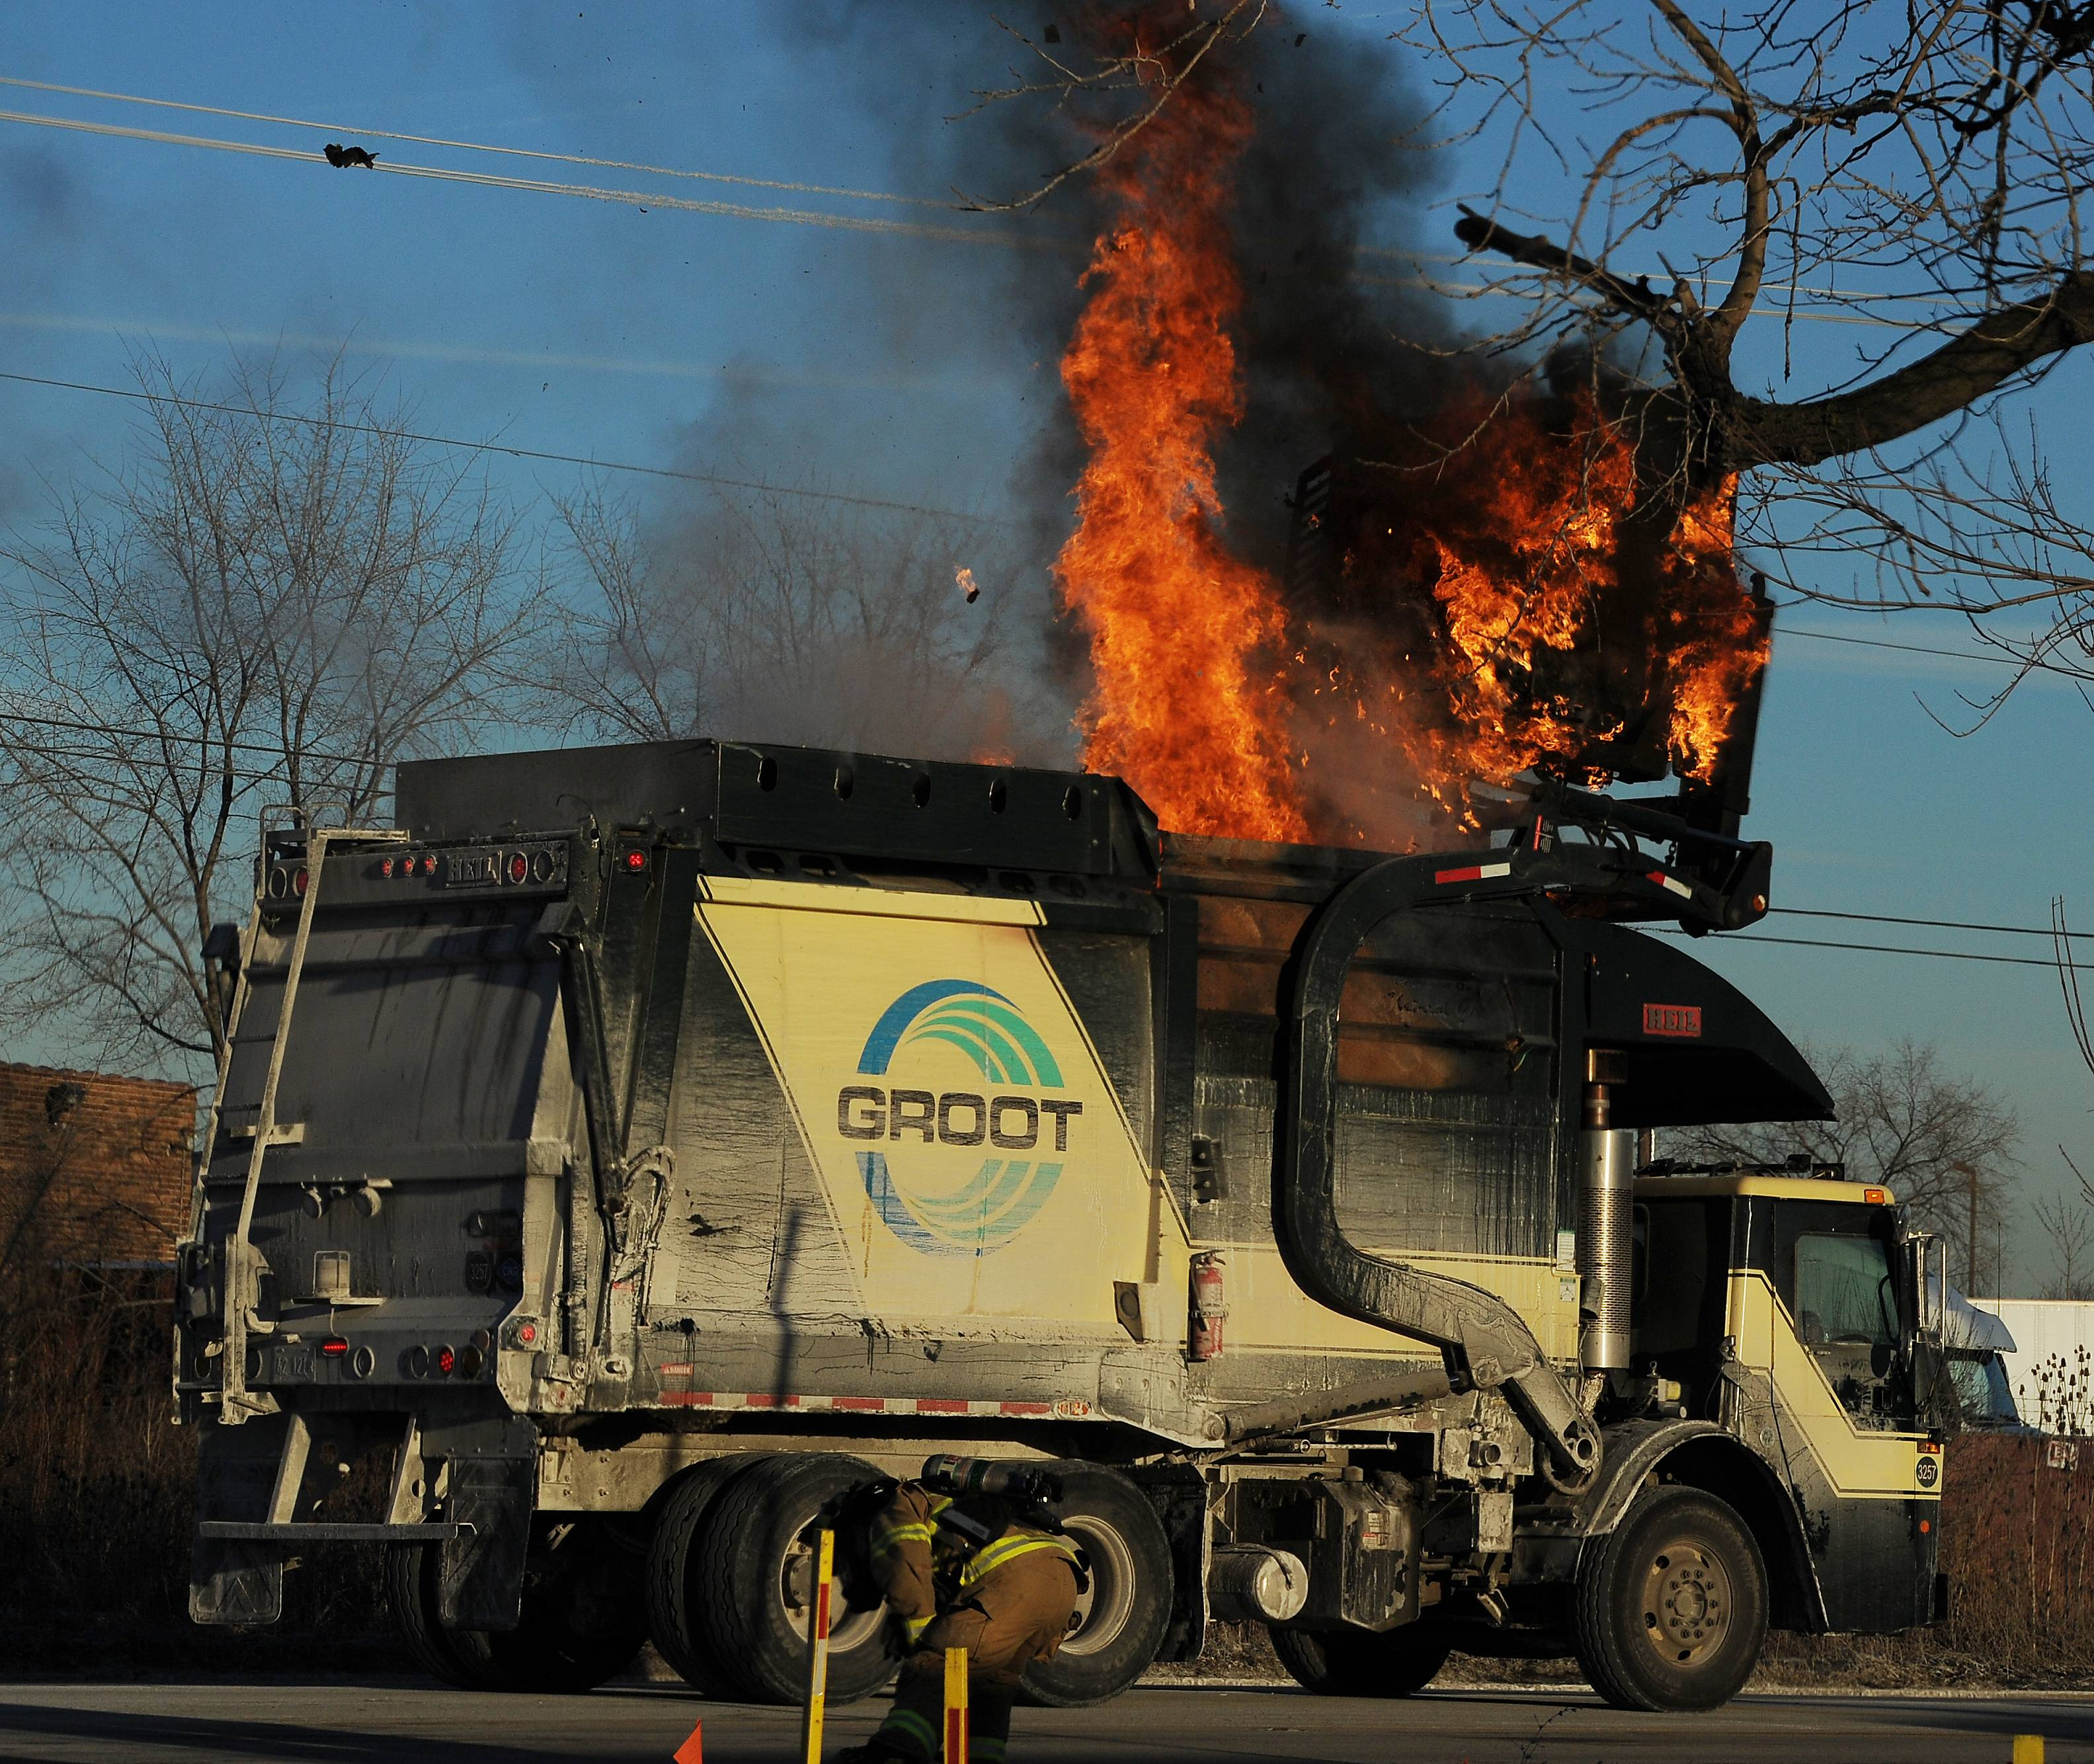 Elk Grove firefighters responded to a Groot garbage truck on fire on Route 72 in unincorporated Elk Grove Township on Saturday afternoon. The fire department dumped the load of garbage on to Higgins Road to get to the heart of the fire, which started in the refuse bin.